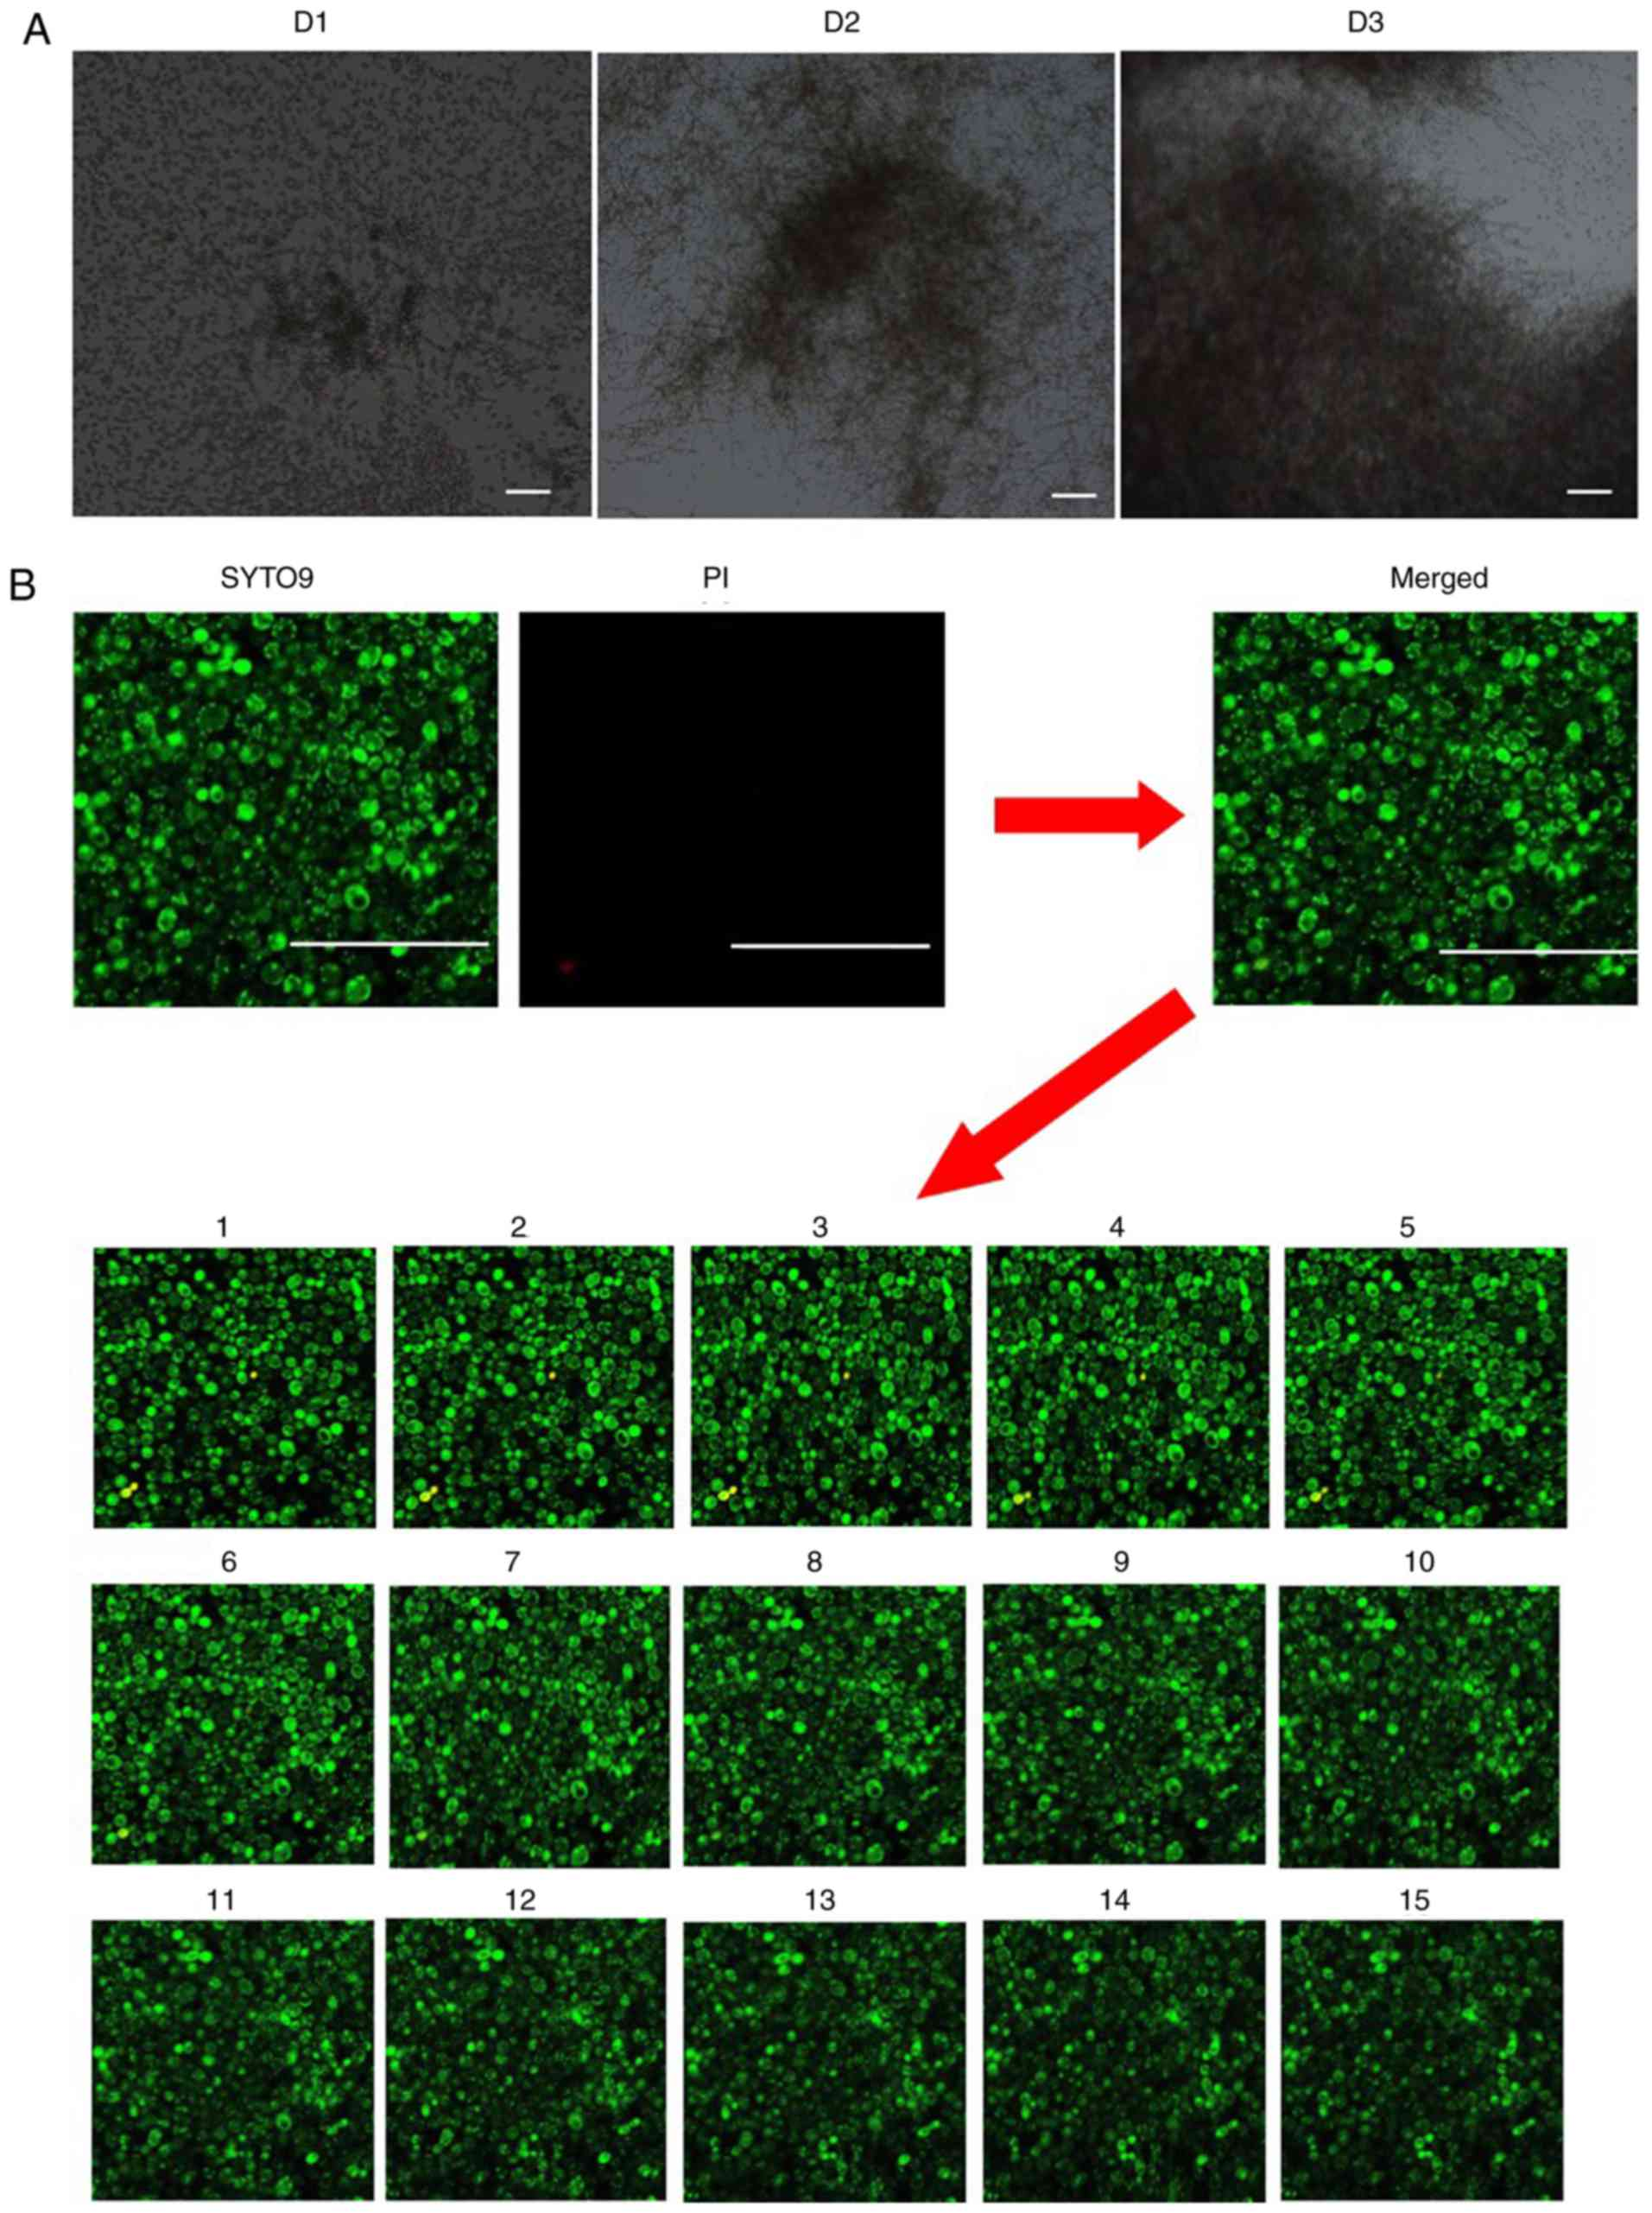 Application of 460 nm visible light for the elimination of Candida